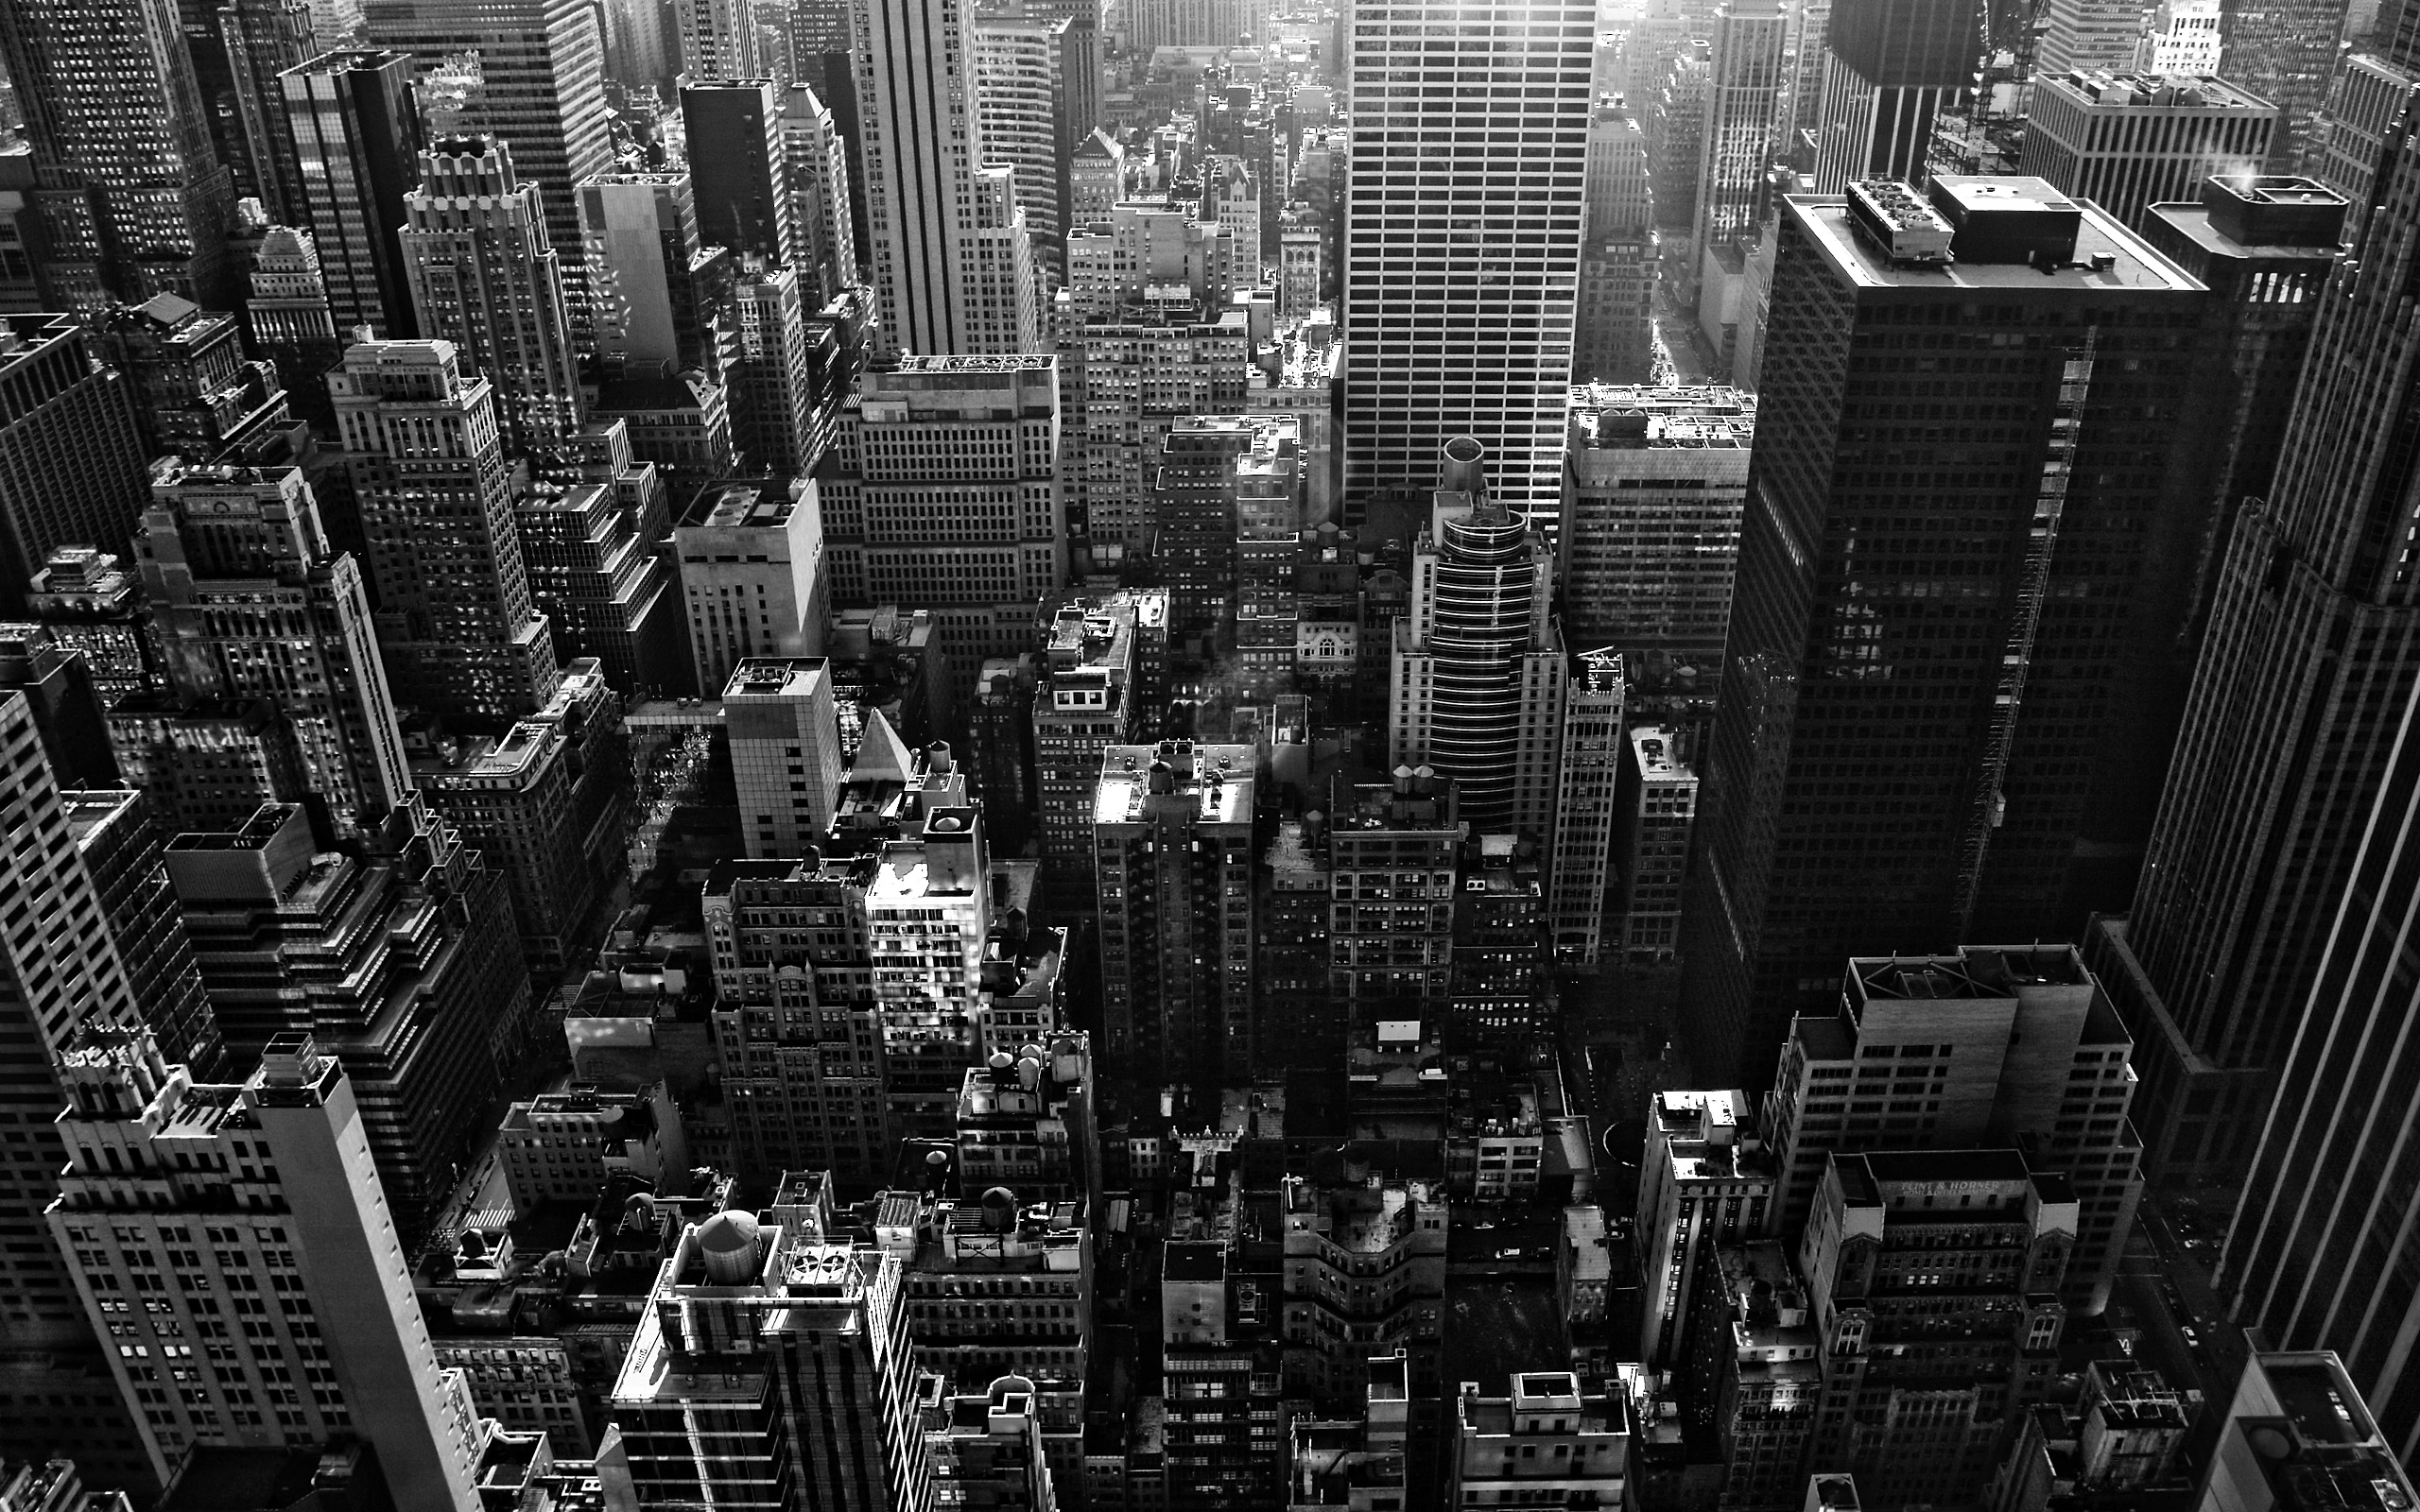 Good Wallpaper Home Screen New York - tumblr_static_1zx8pkxy9x5w0cscowgg04gg  Graphic_807385.jpg